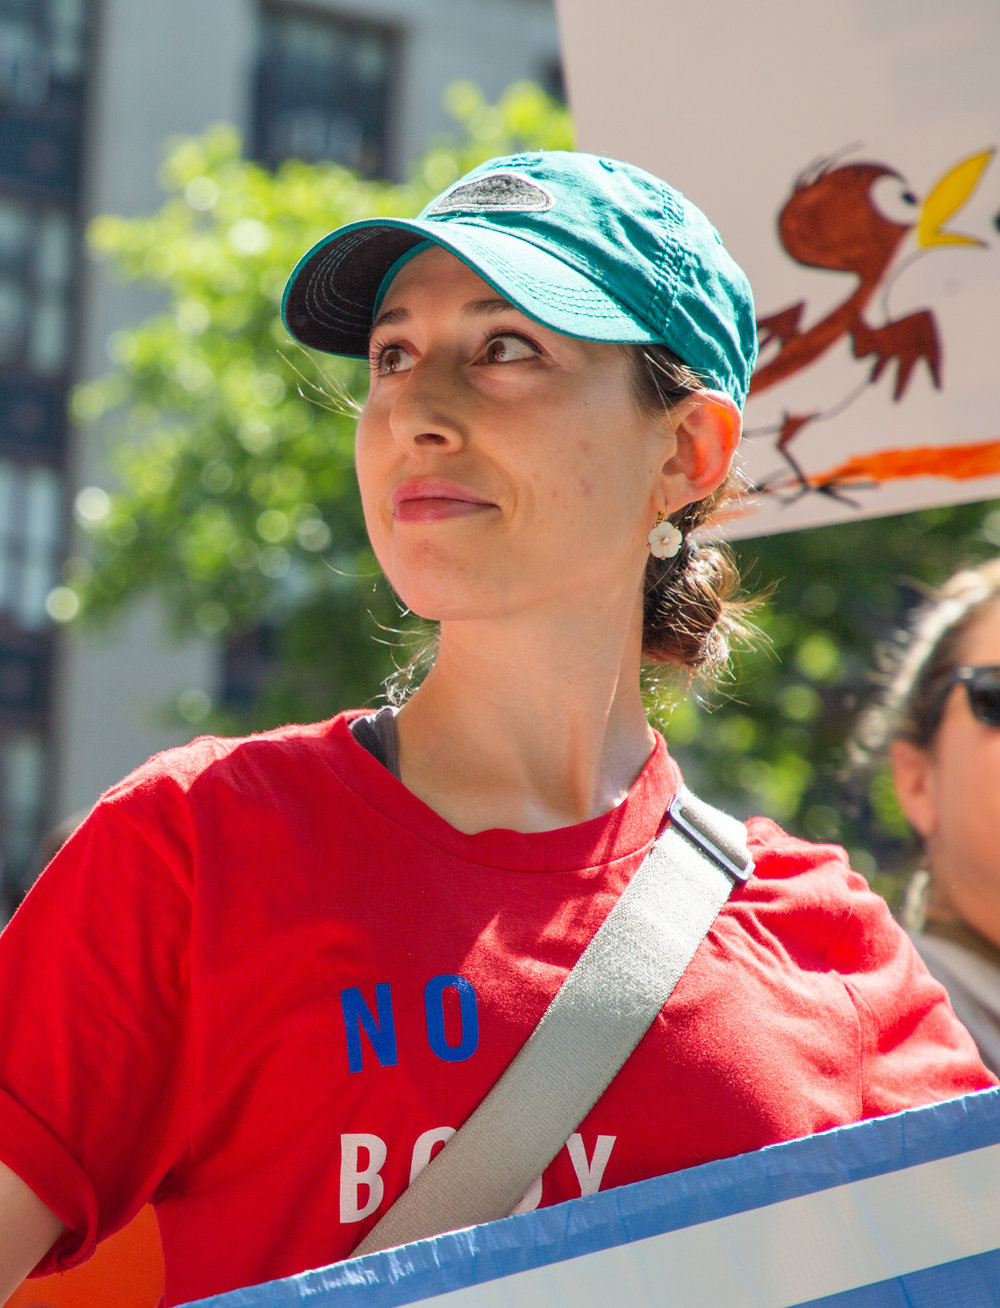 6.30.18_FamiliesBelongTogether_NYCLU-14.jpg